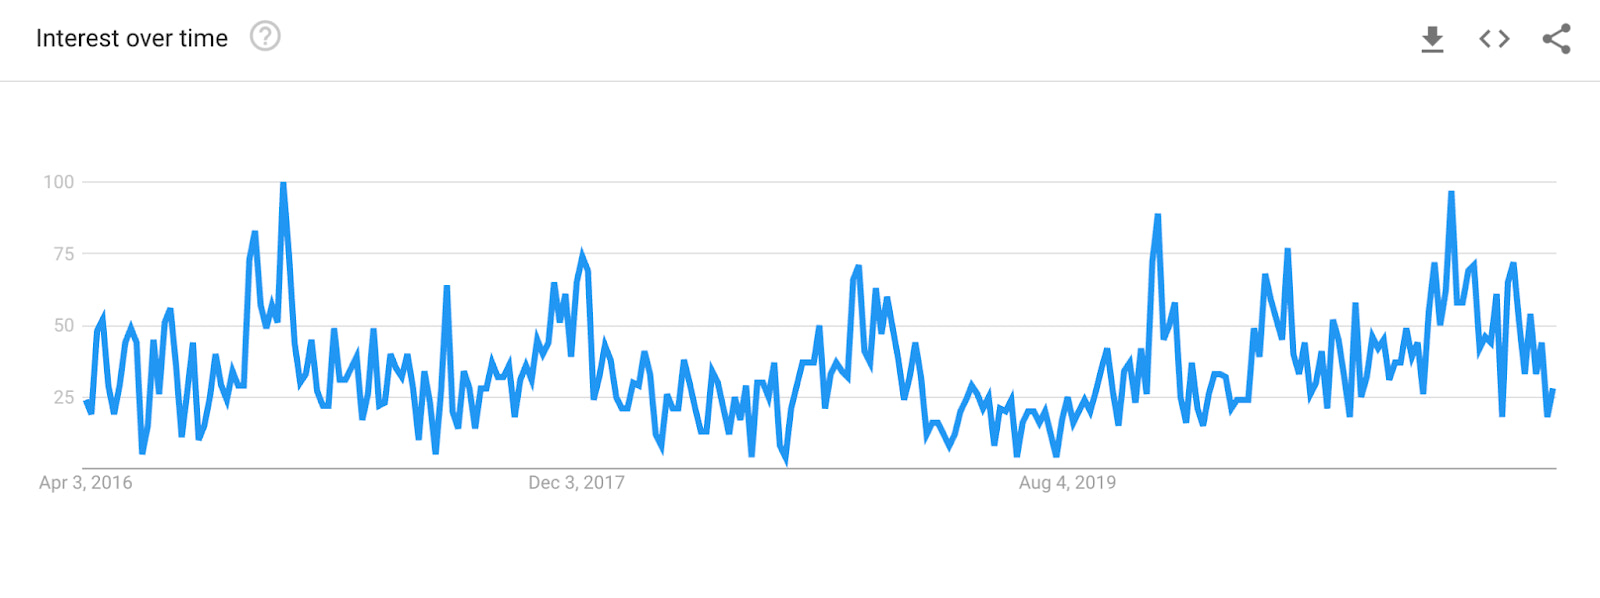 Google Trend interest for candles